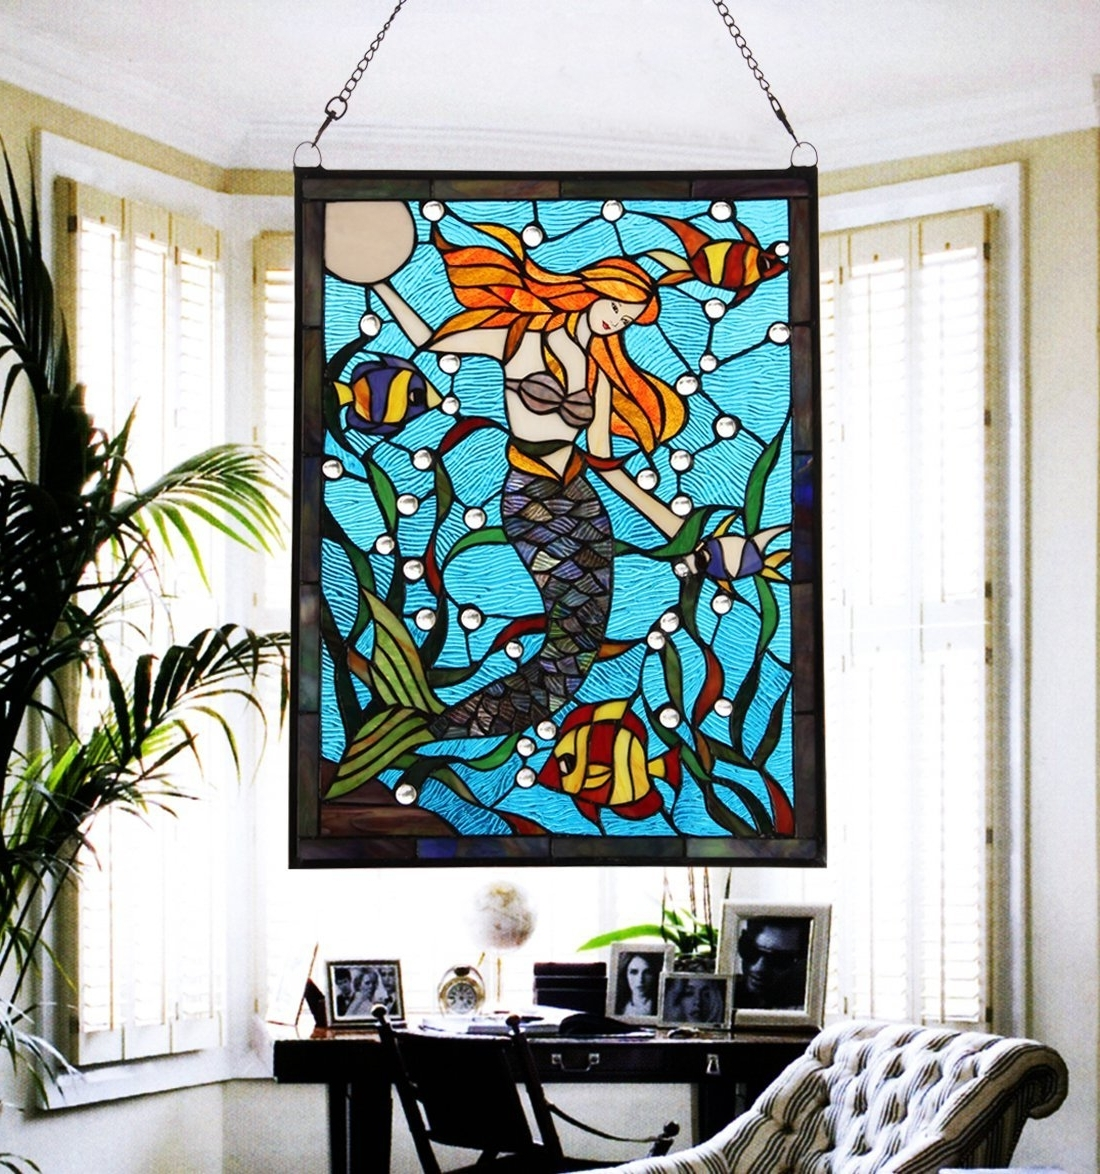 Stained Glass Wall Art Intended For Newest Stained Glass Wall Art – Culturehoop (View 7 of 15)